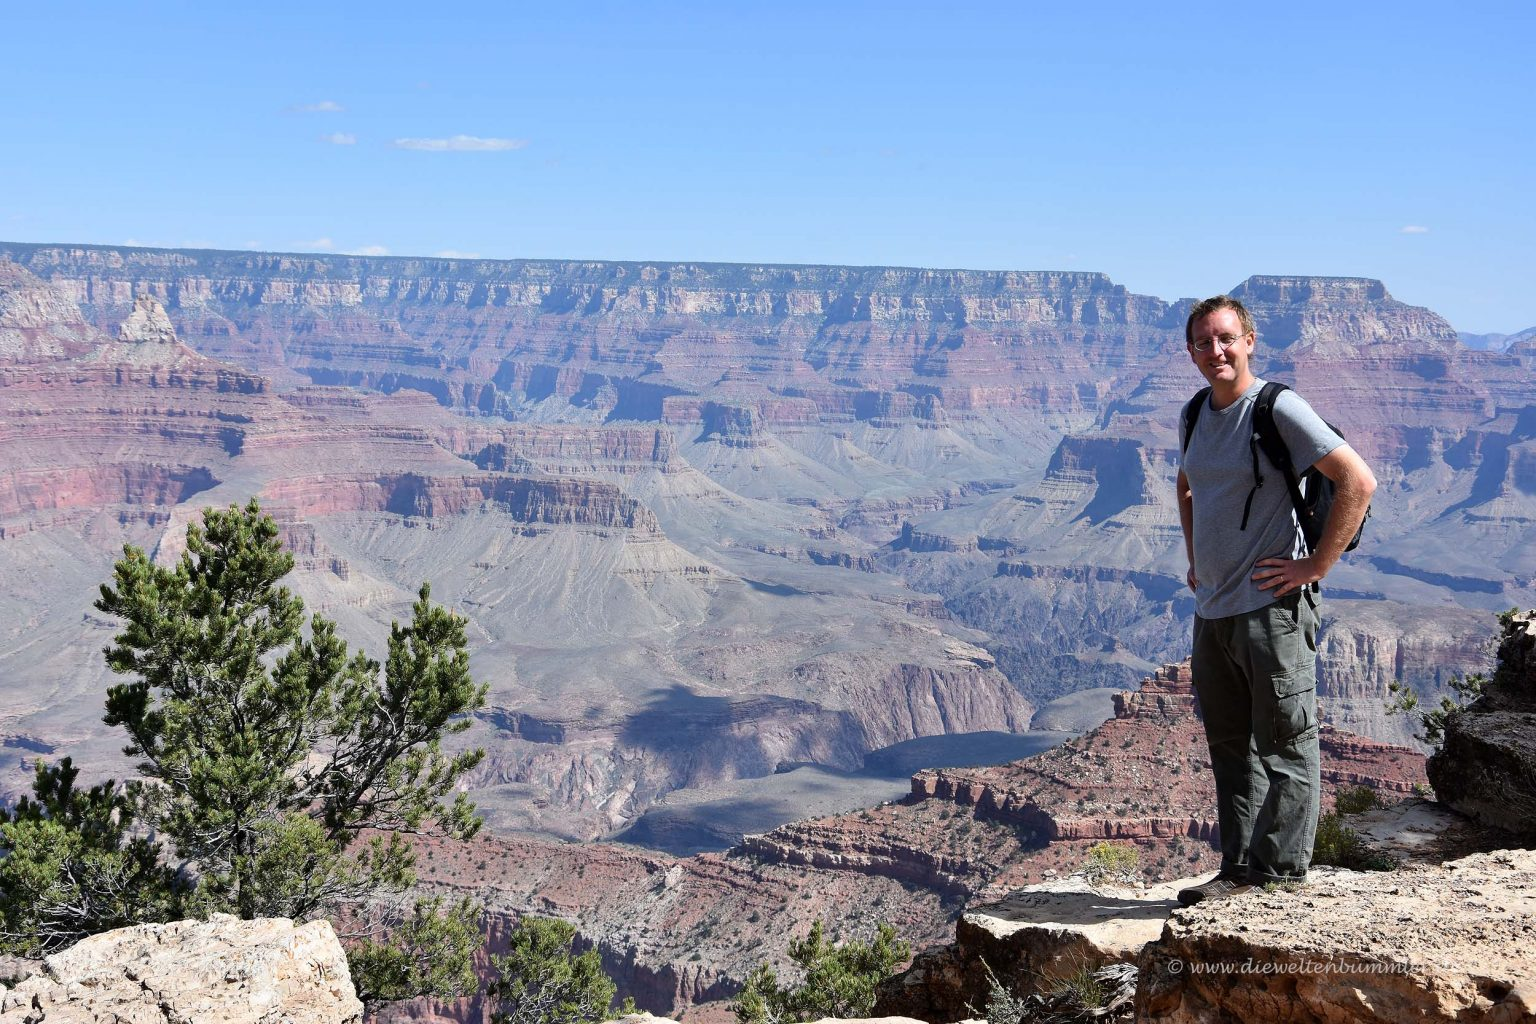 Michael Moll am Grand Canyon